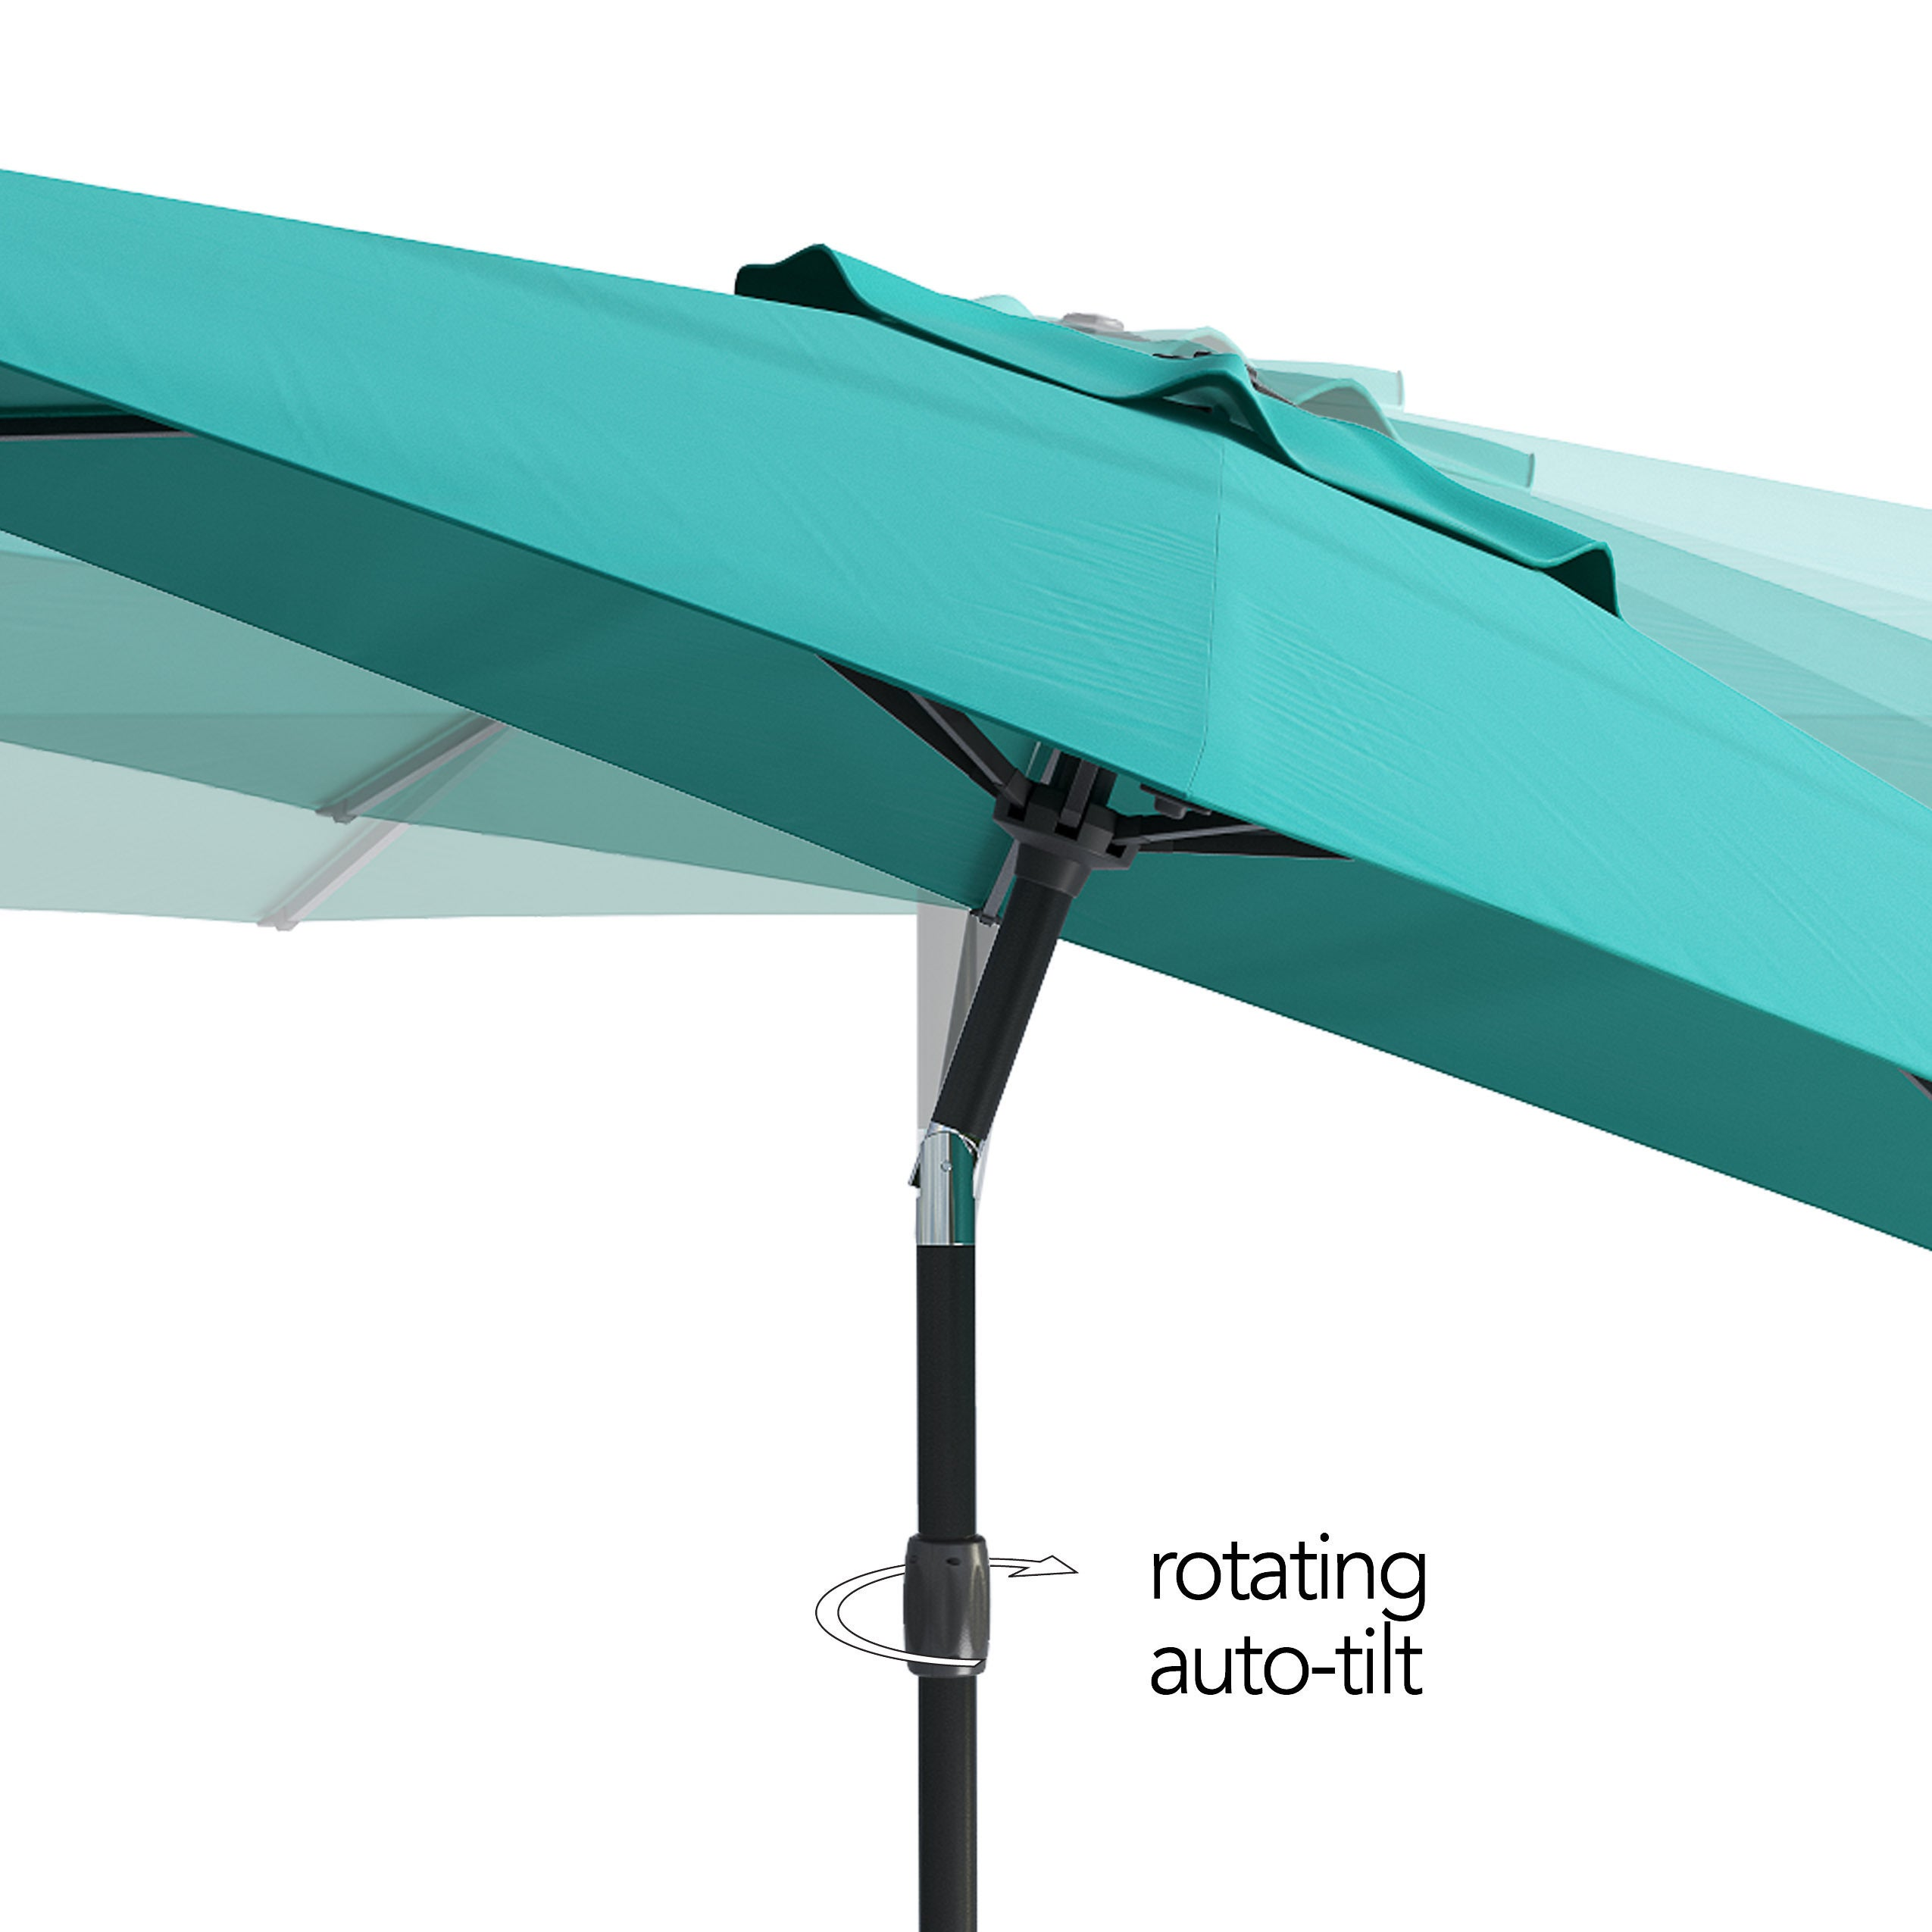 Corliving Uv And Wind Resistant Tilting Patio Umbrella Free Shipping Today 14444344